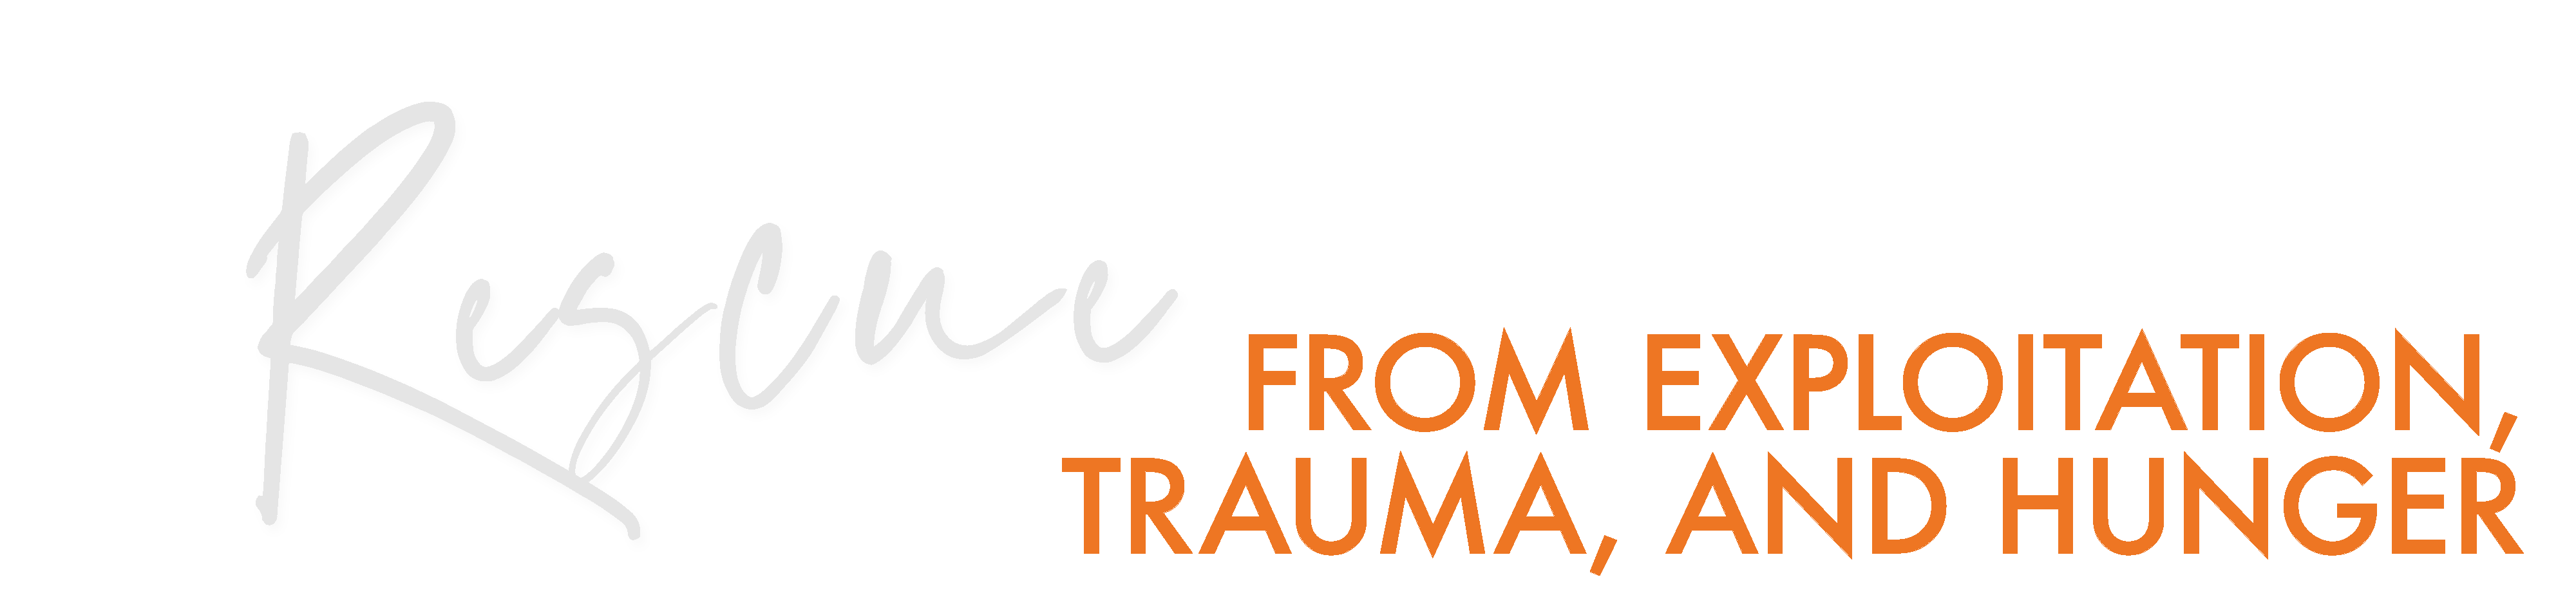 Spring-GC-2020-Rescue-TRAUMA-web.png